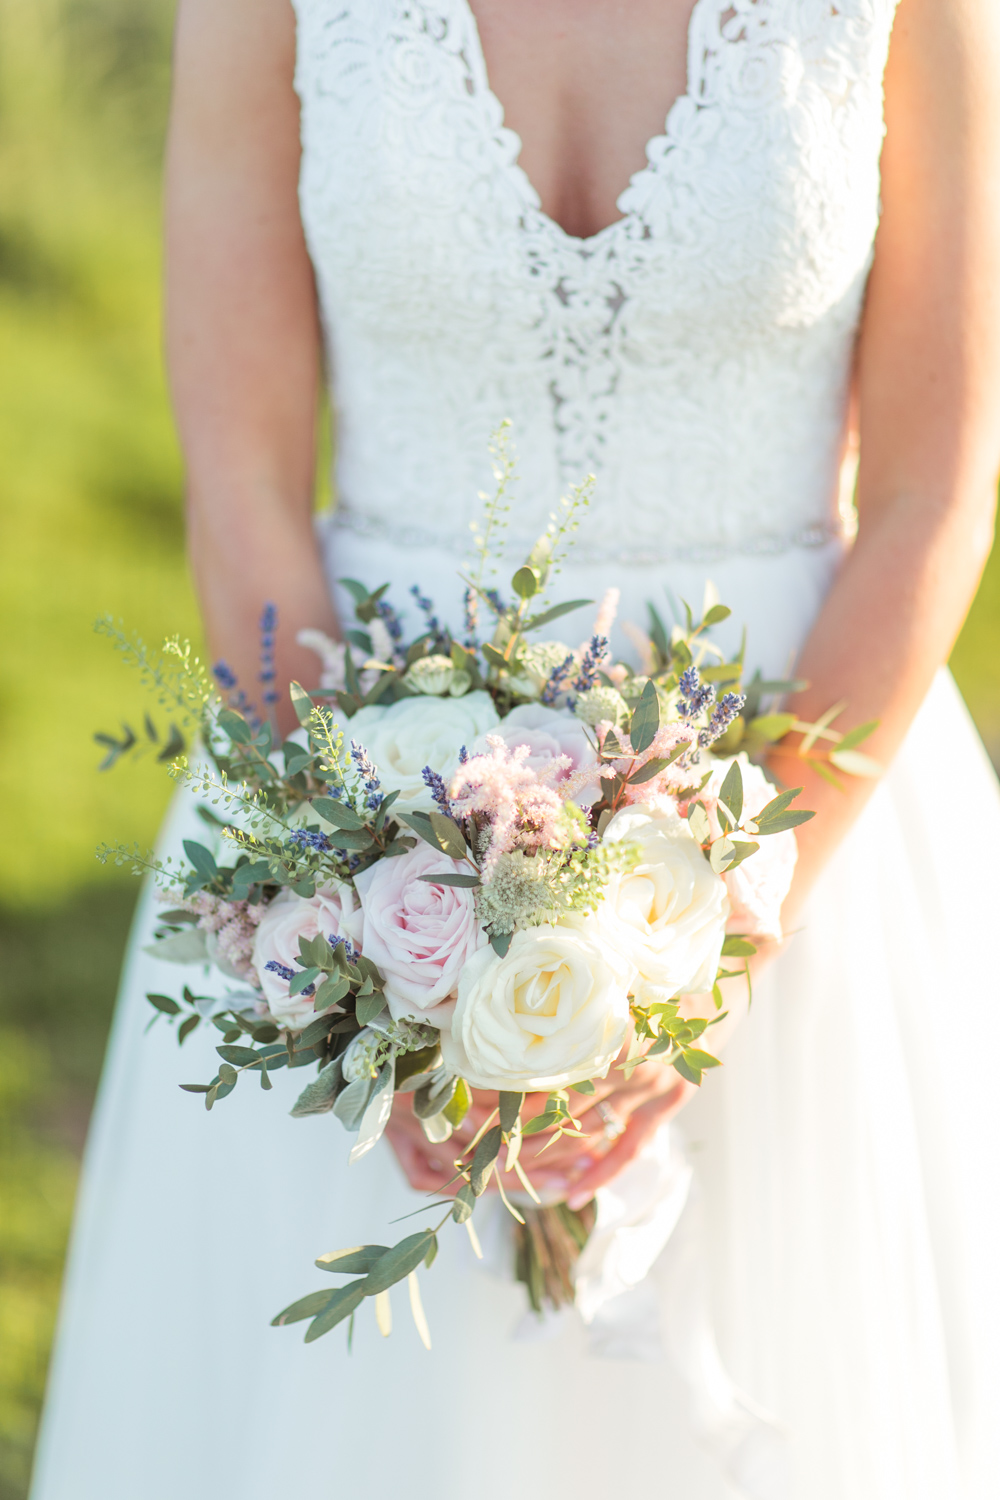 lace top wedding dress top with a deep plunge and pastelle loose wedding bouquet with wildflowers